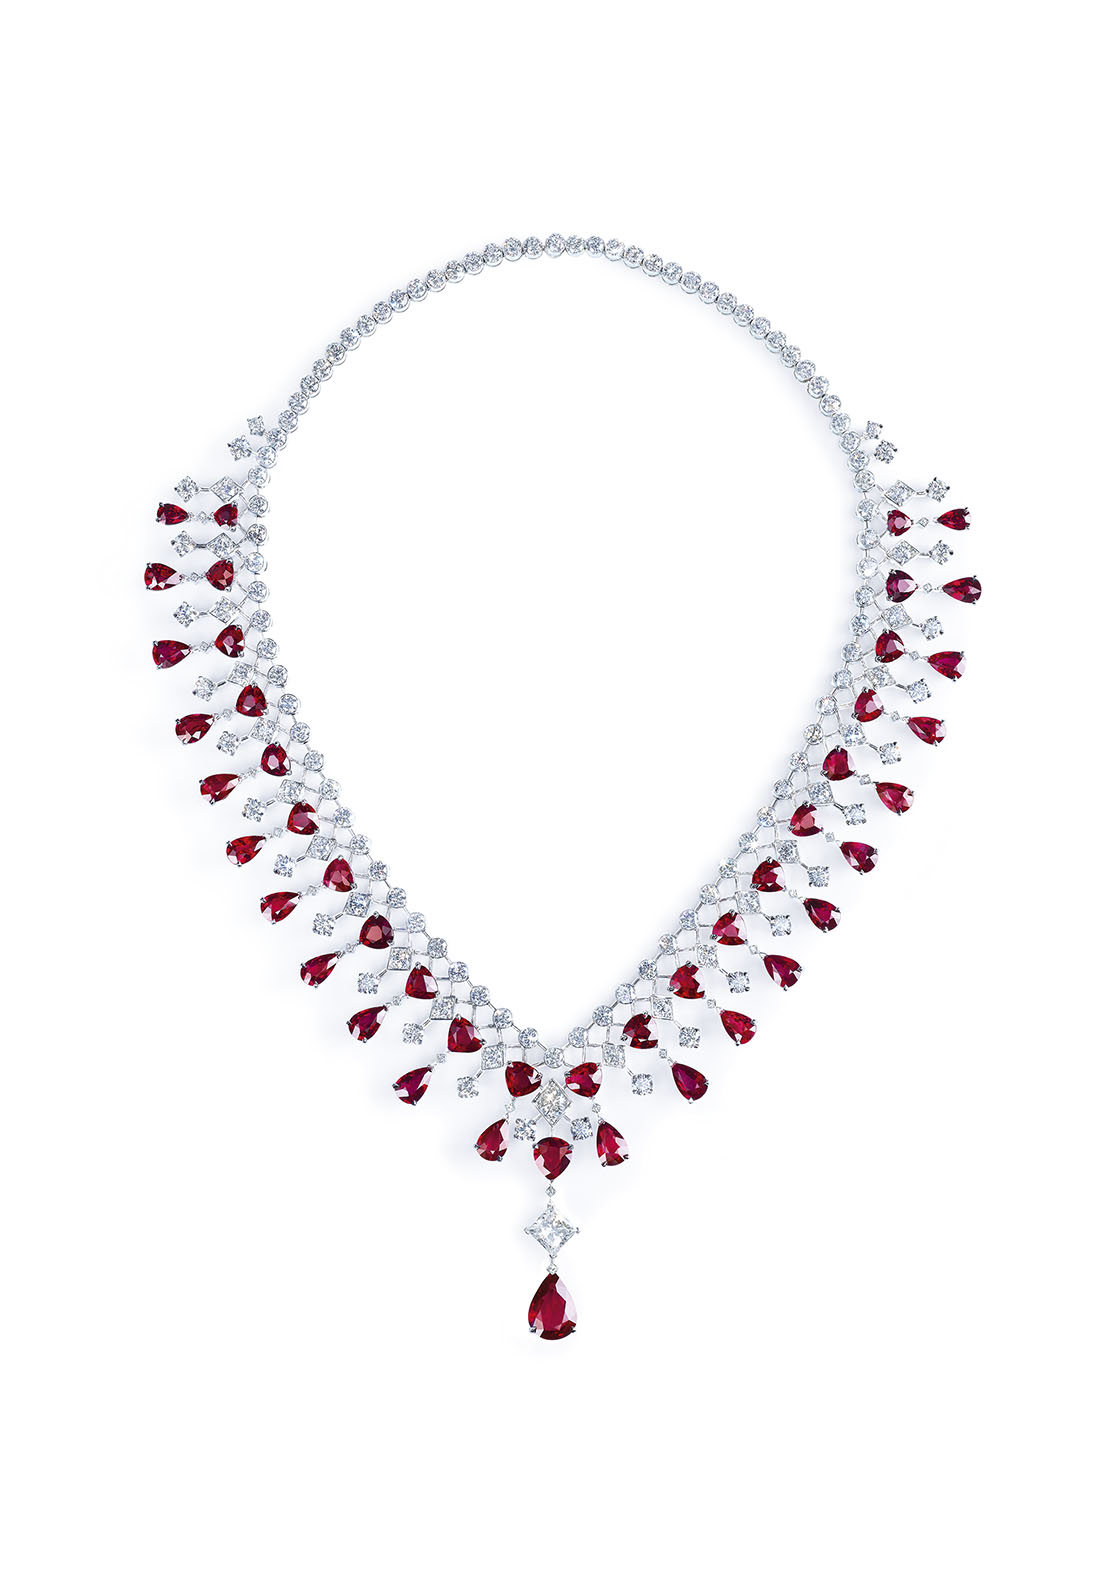 Piaget's High Jewelry Collection: Ruby and Diamond Necklace. 18k white gold set with a pear shaped ruby, 45 pear-shaped rubies, a princess-cut diamond and 158 brilliant cut diamonds.